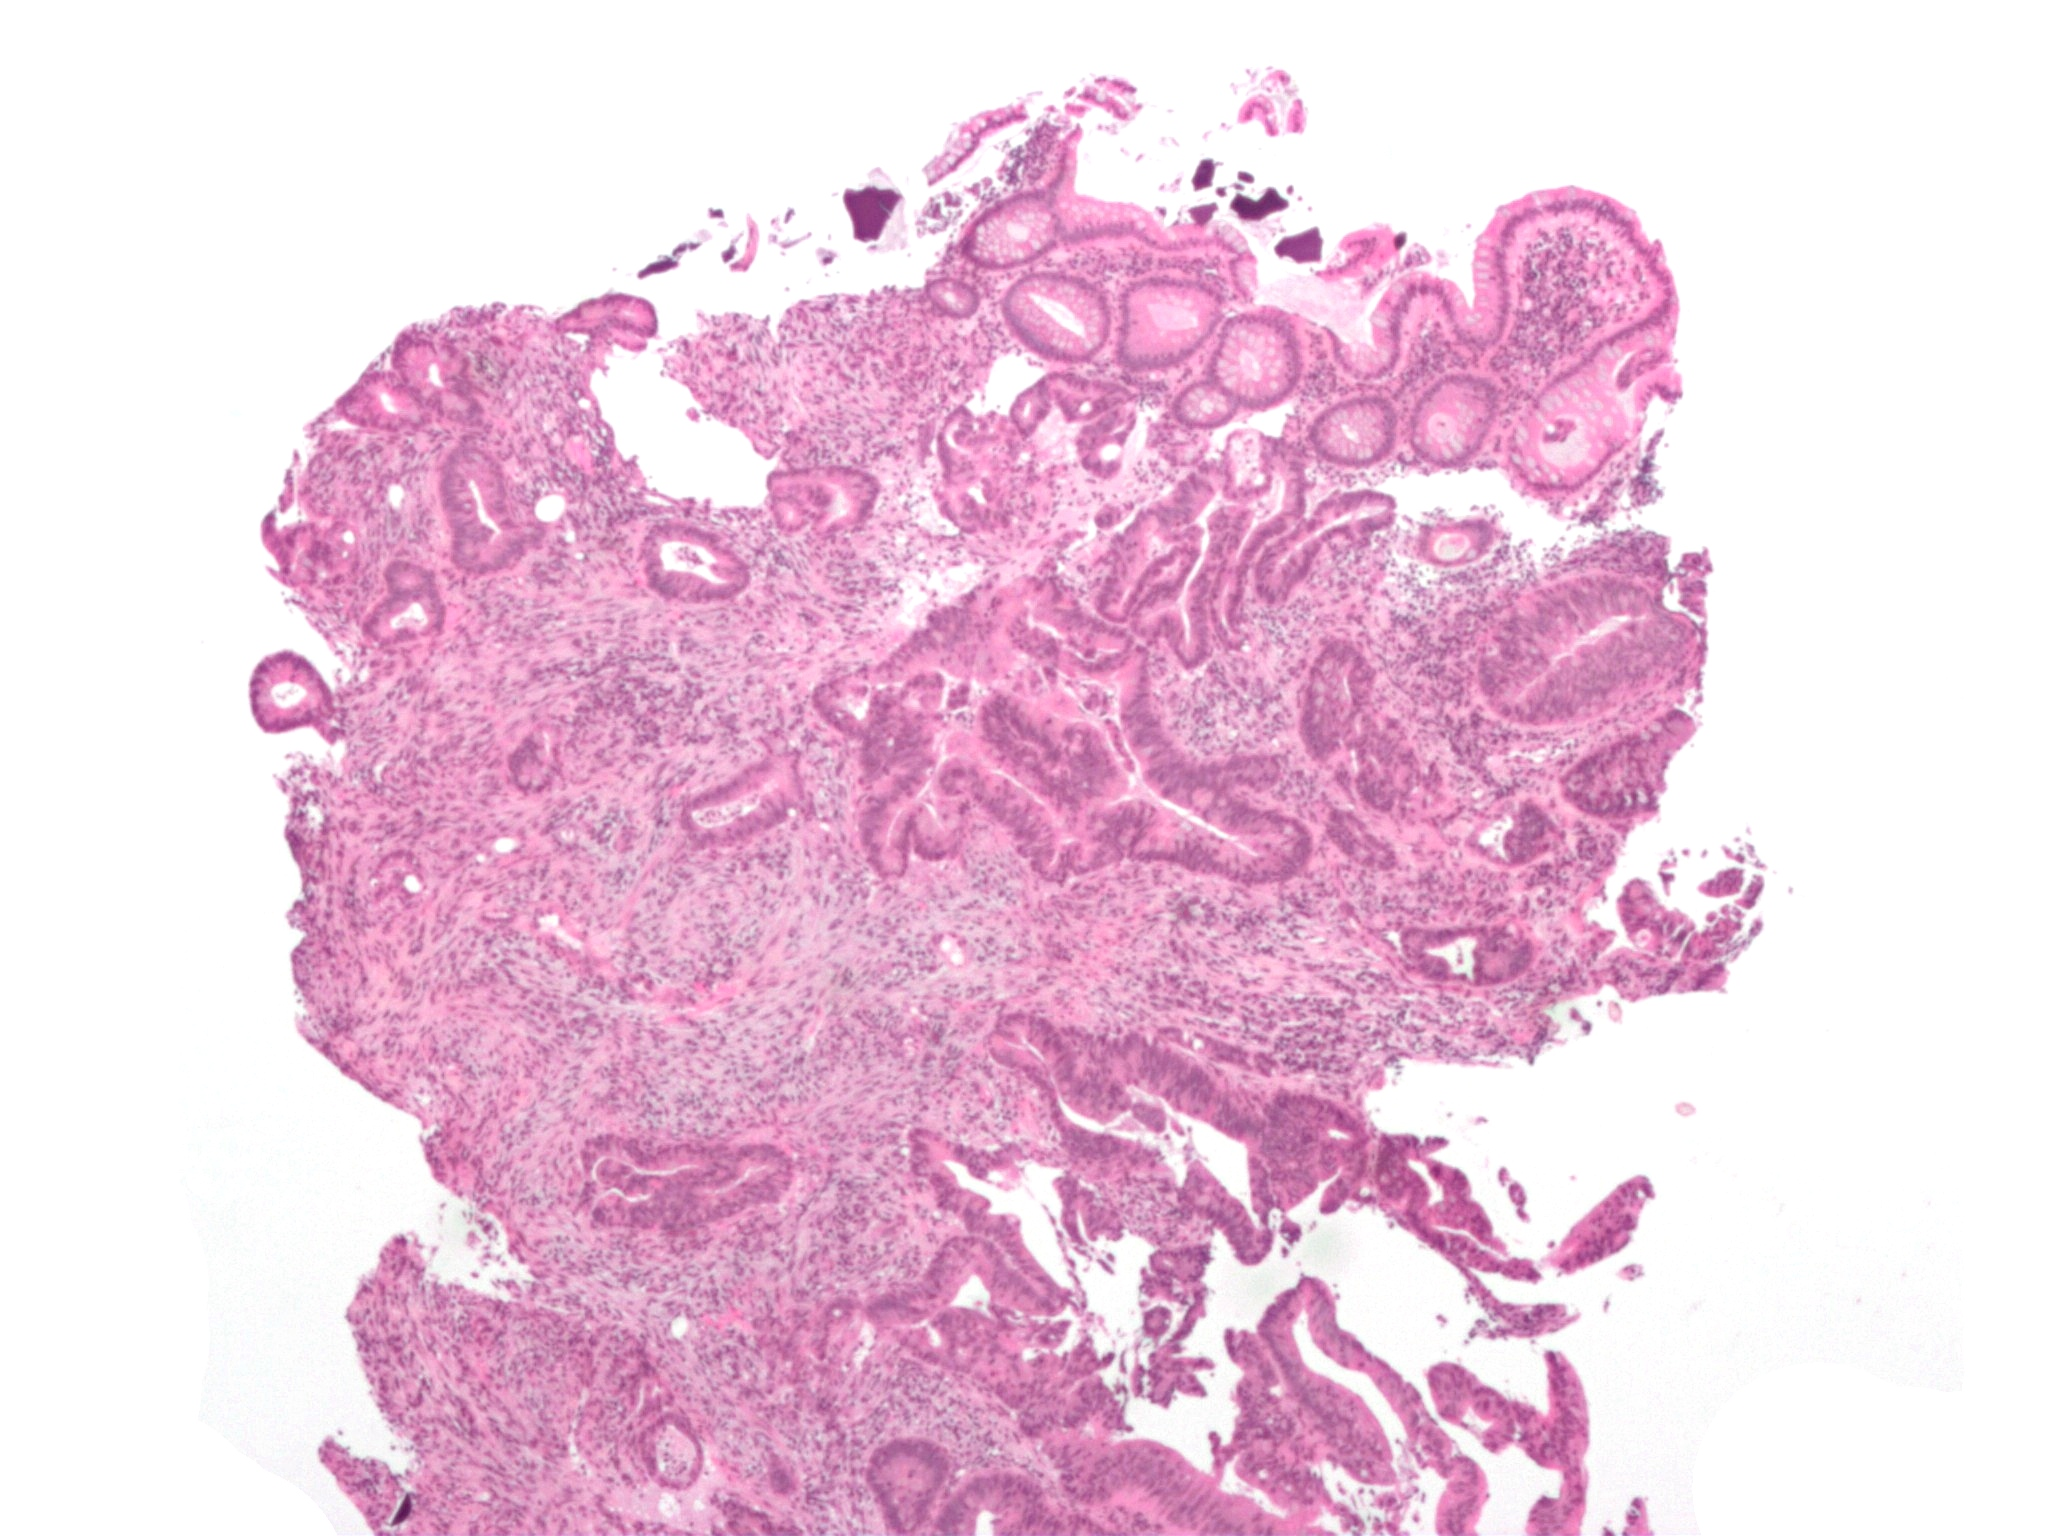 Micrograph of an invasive cecal adenocarcinoma -- a type of colon cancer. Via Wikimedia.